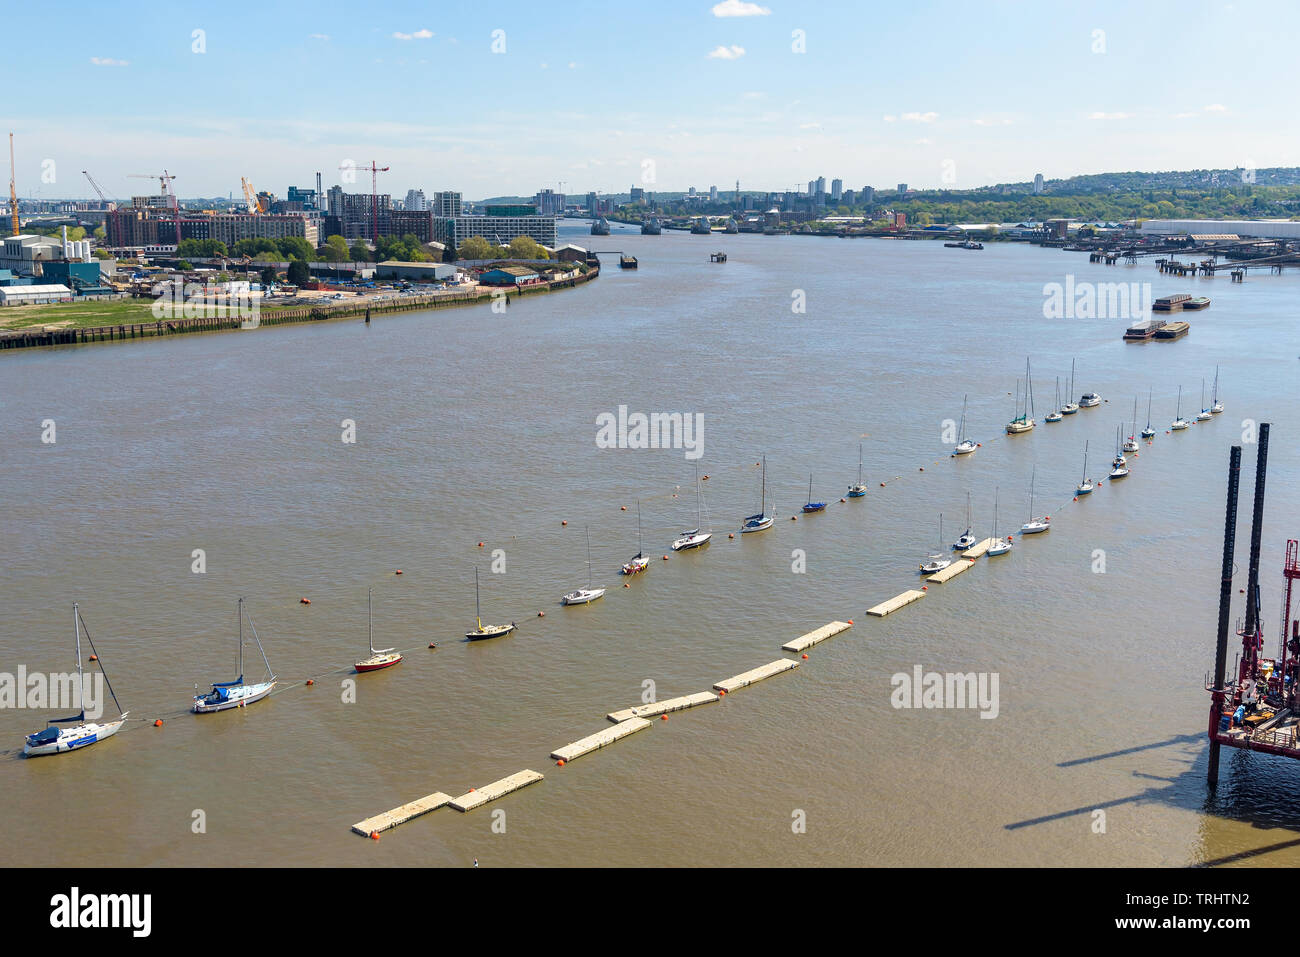 Aerial view of River Thames in eastern London with Thames Barrier in the background - Stock Image